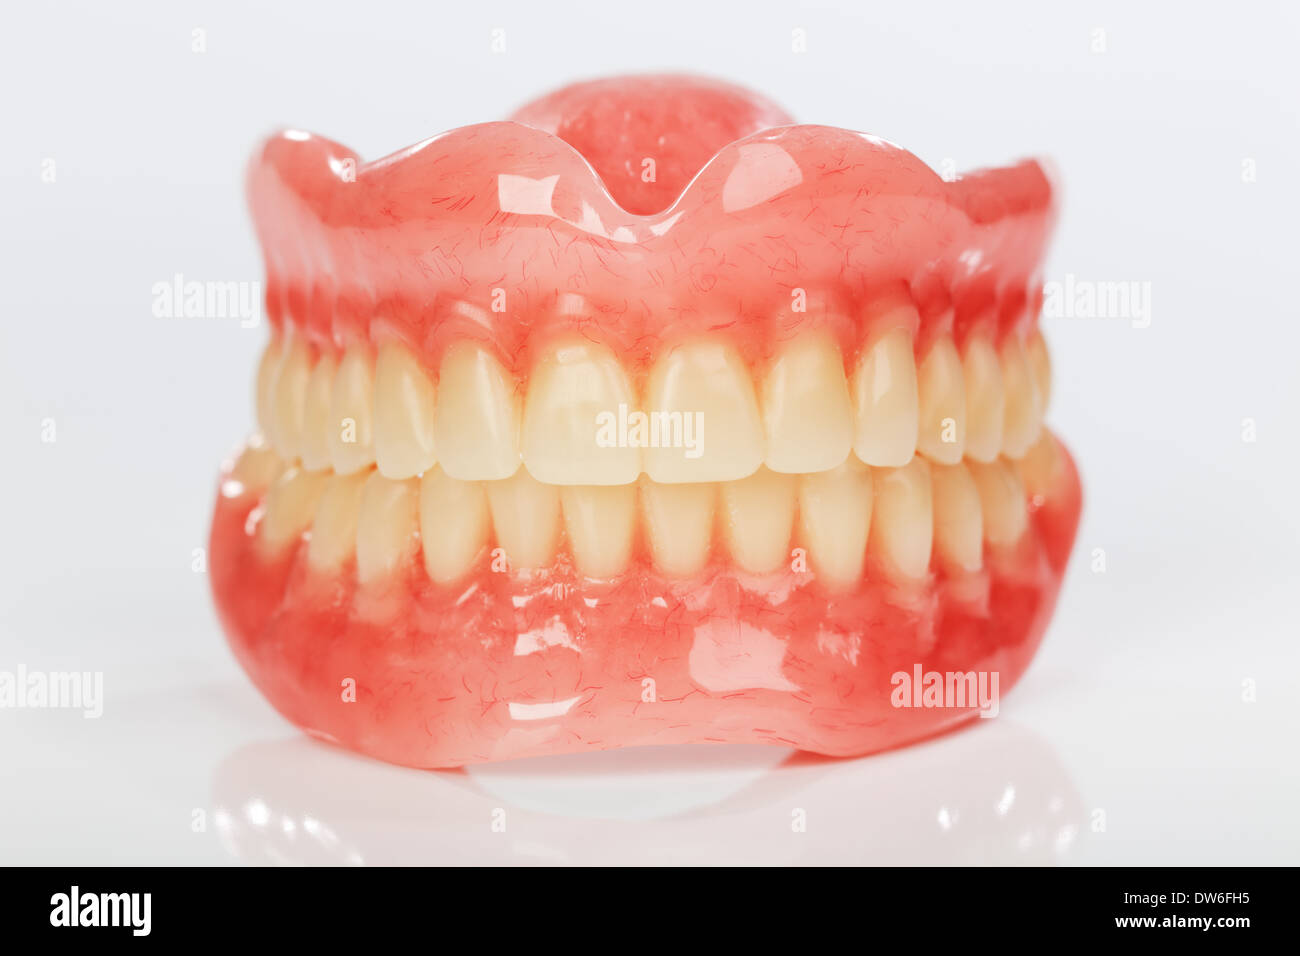 A set of dentures on a shiny white background - Stock Image